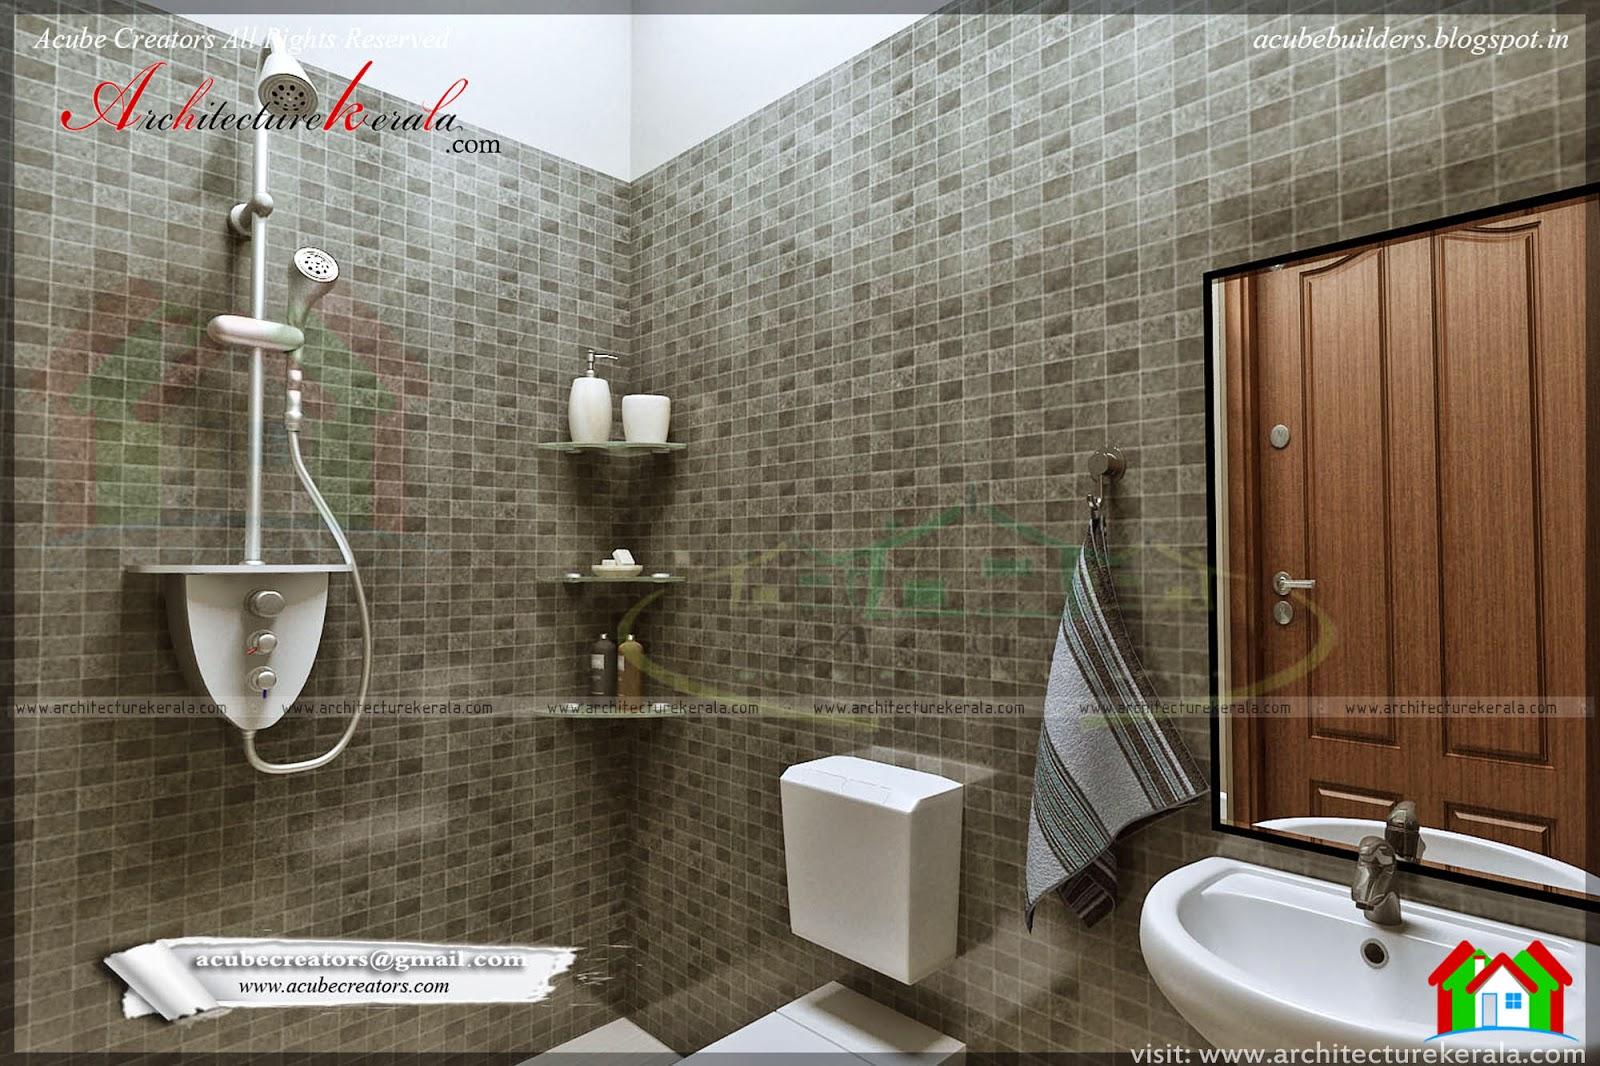 Bathroom interior design architecture kerala for Bathroom ideas kerala